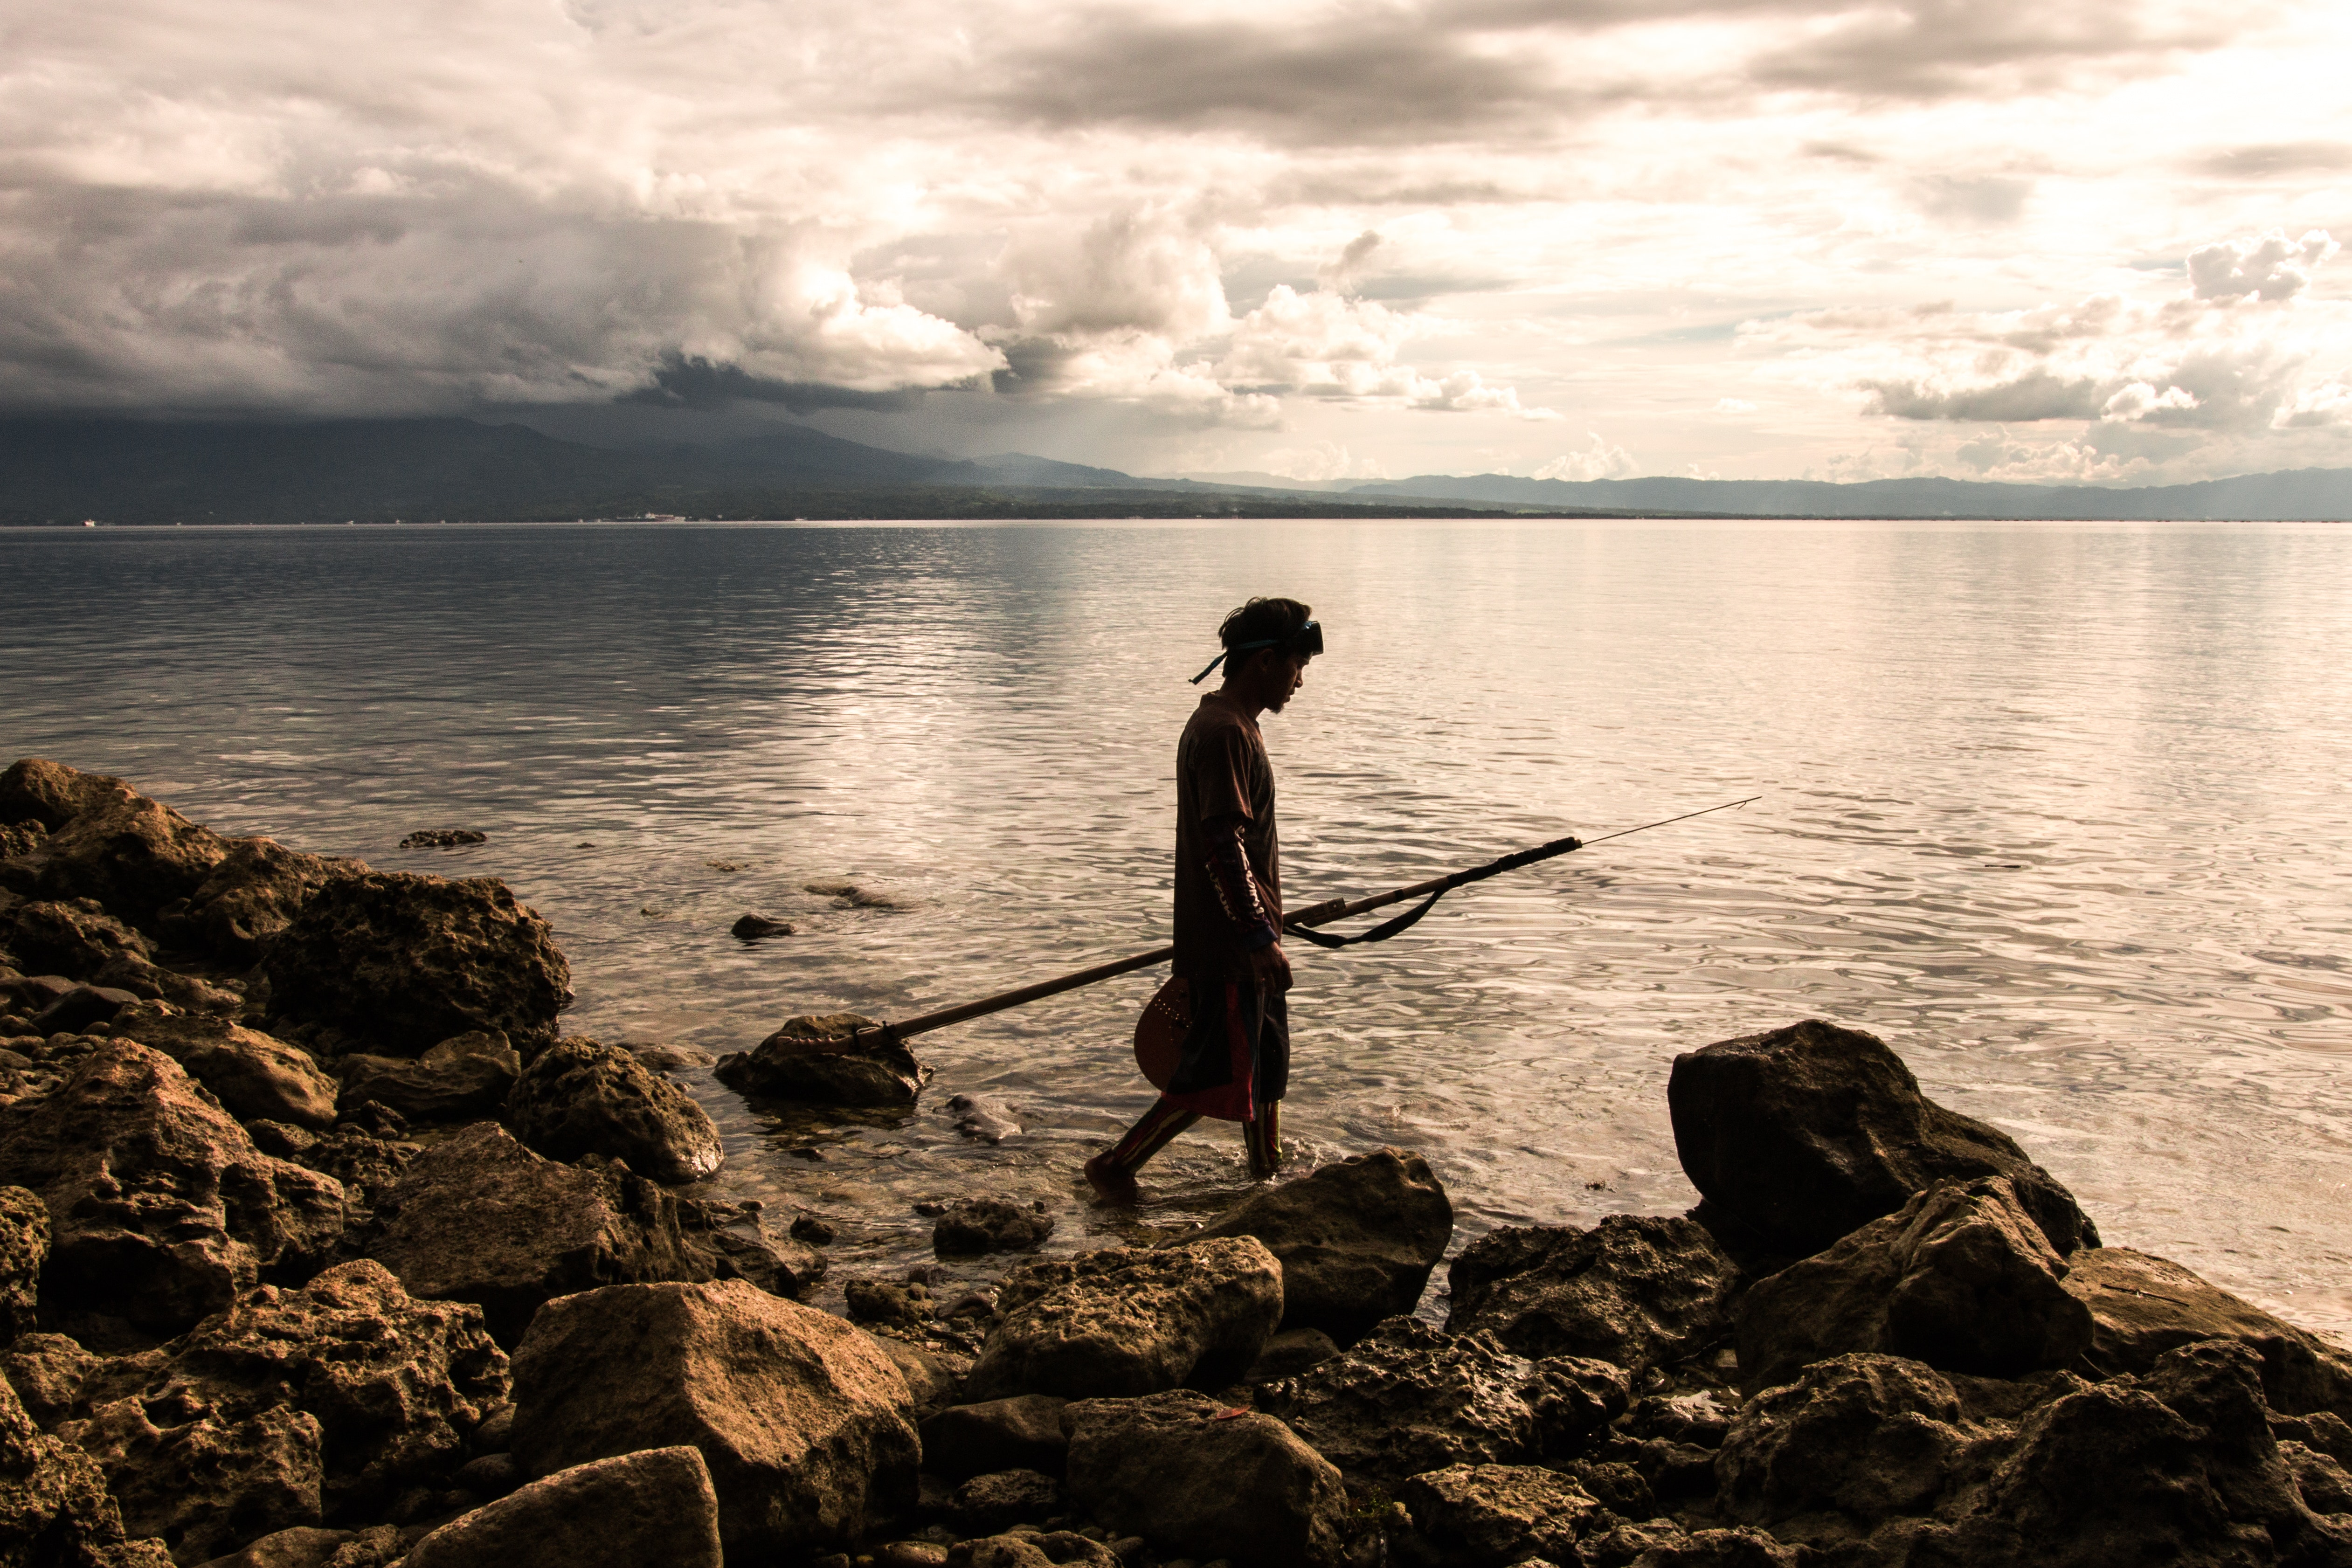 Person Holding Spear Beside Body of Water, Rocky shore, Scenic, Rocks, Person, HQ Photo